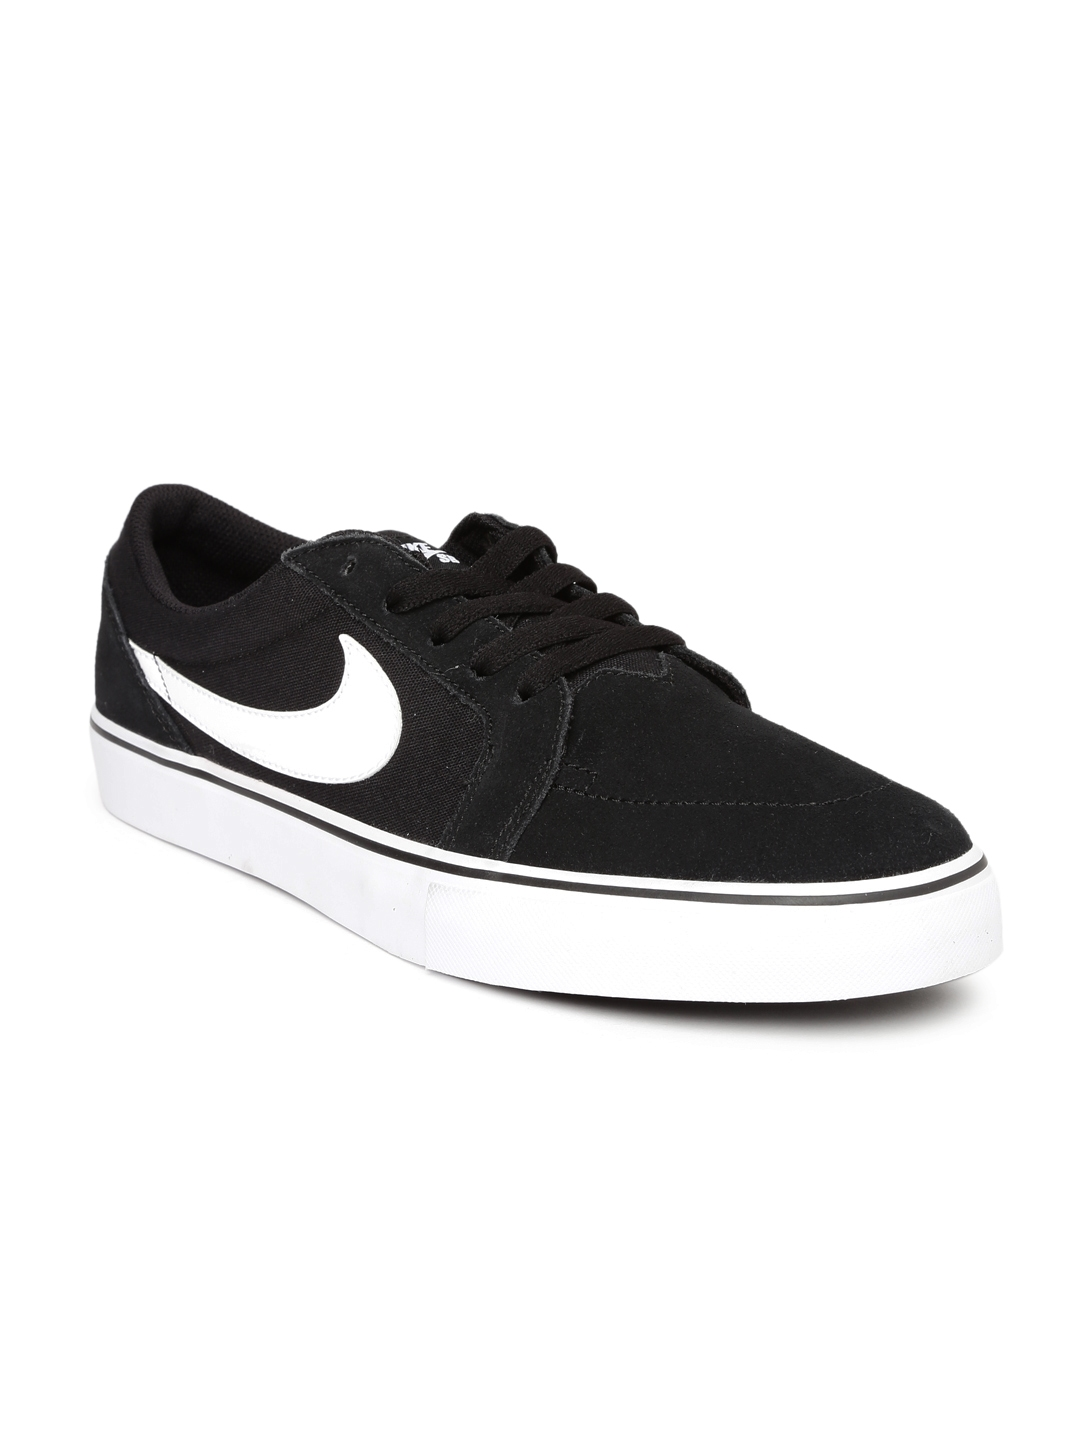 c27cd2613b0d Buy Nike Men Black SB Satire II Skate Shoes - Casual Shoes for Men ...